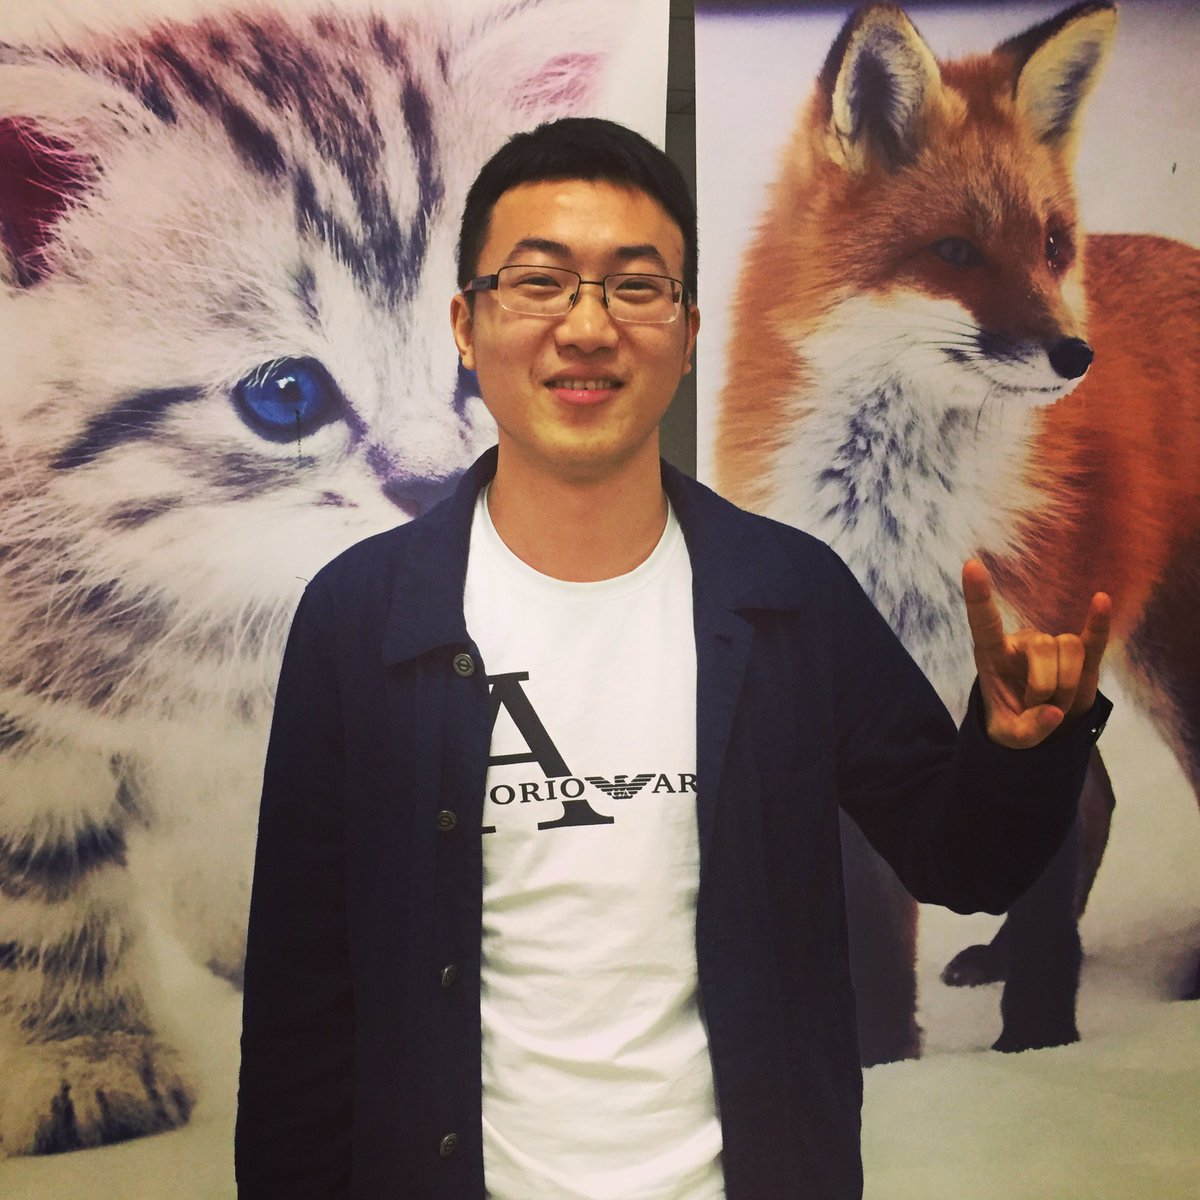 #ACTAsia volunteer in #furfreeretailer top from #armani reminding us about #fox and #cat fur mislabeling in the #uk revently #skynews report<br>http://pic.twitter.com/pLSYRhM8tG